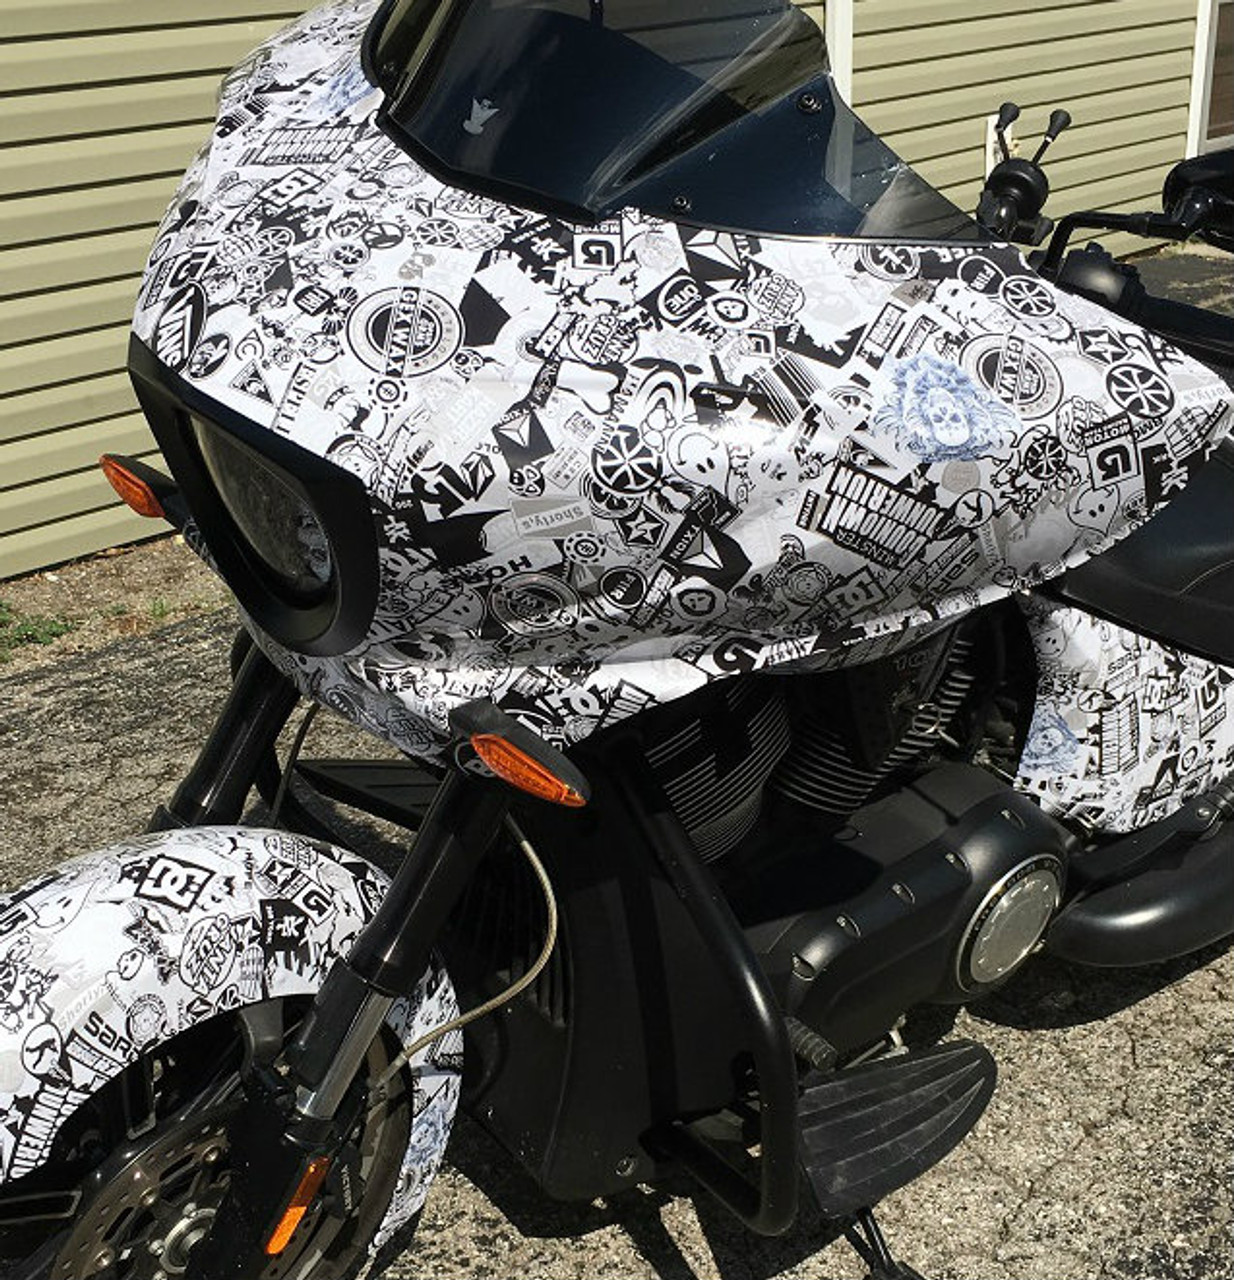 Stickerbomb wrap bike kit vinyl tools